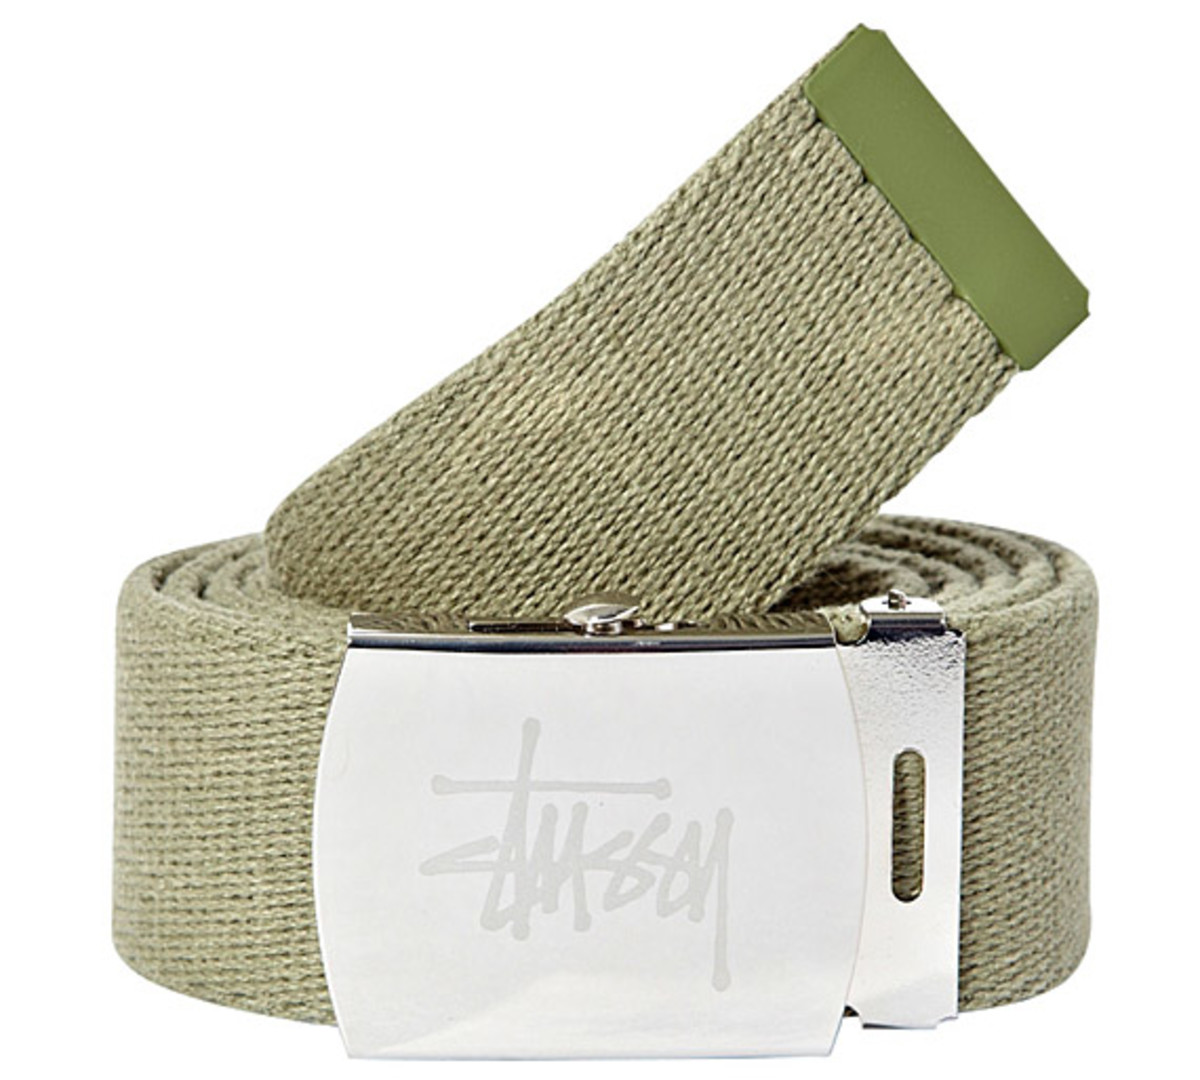 stussy-summer-camo-tipped-stock-web-belt-03